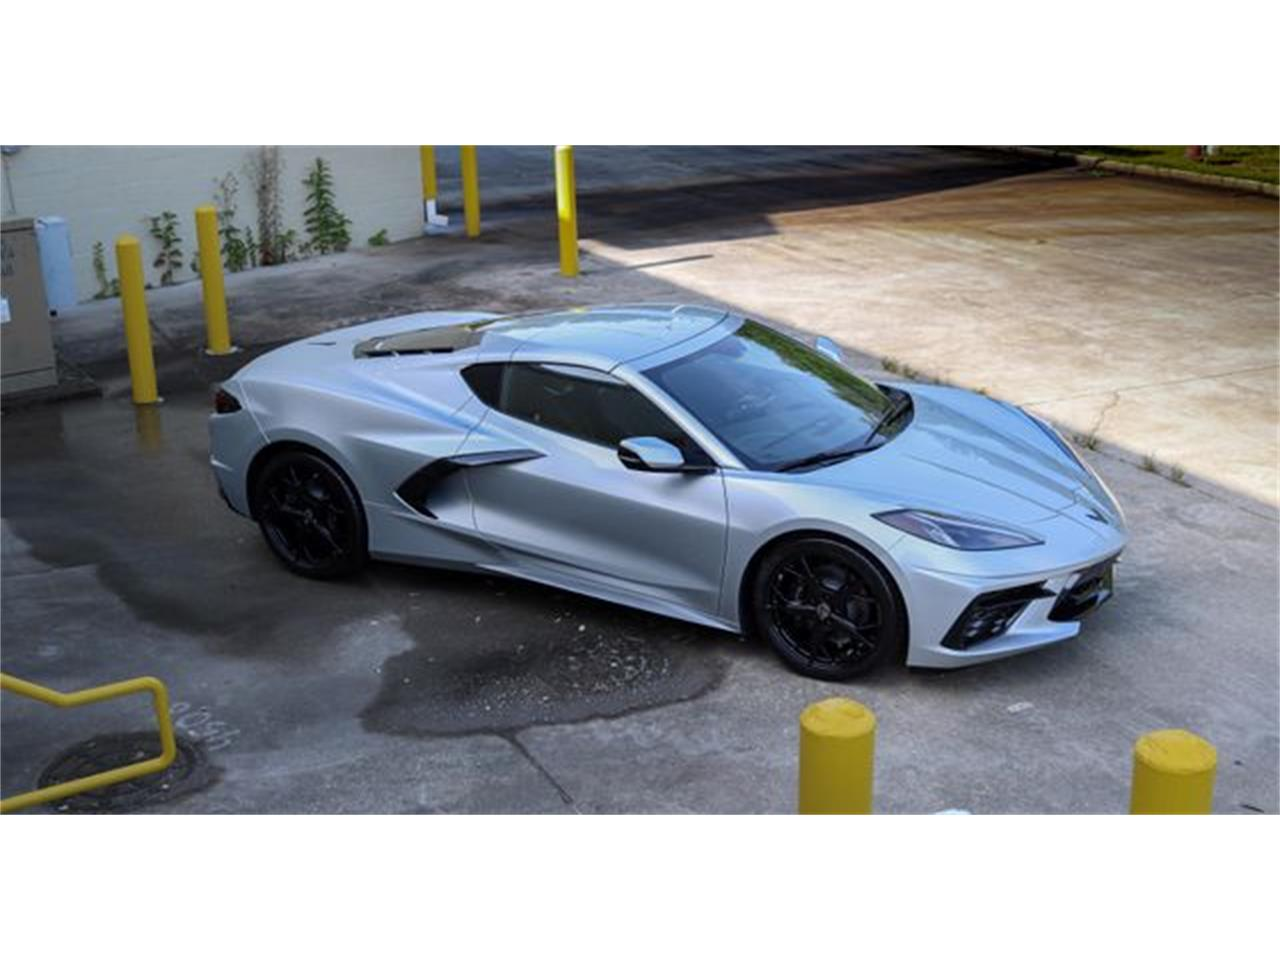 2020 Chevrolet Corvette (CC-1385608) for sale in Aiken, South Carolina